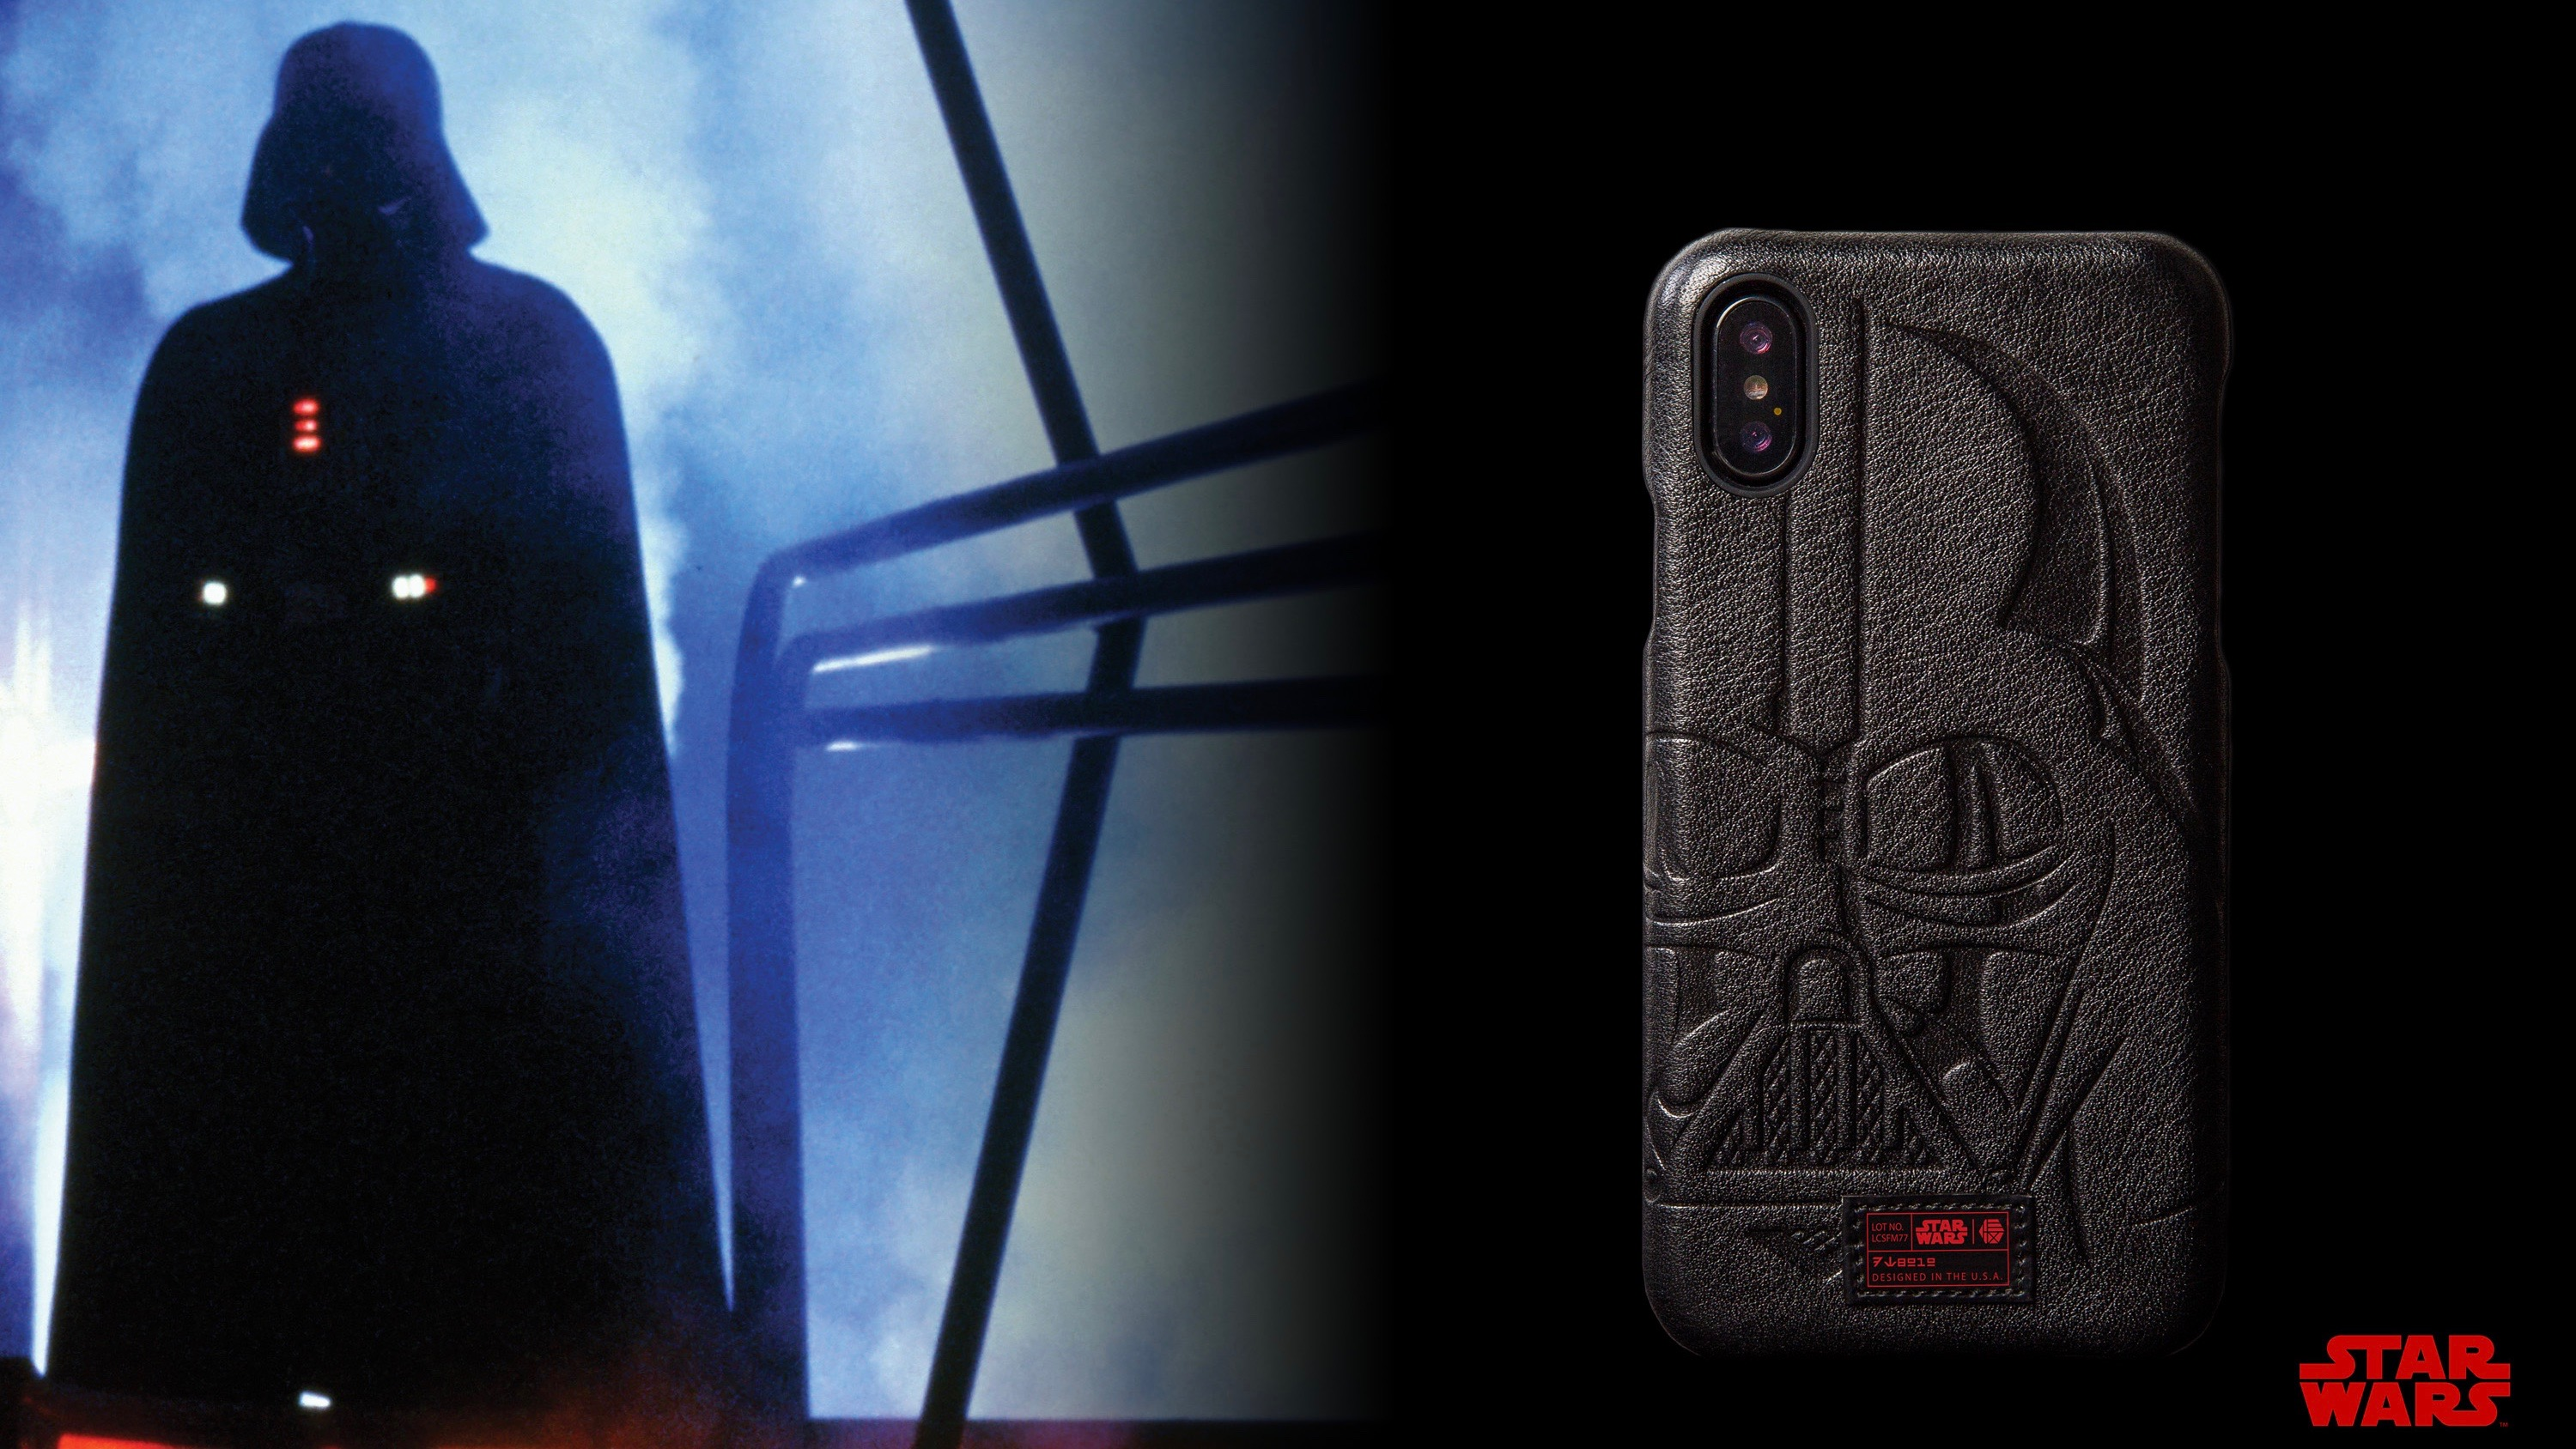 star wars iphone case hex announces slick official wars iphone cases ahead 16194